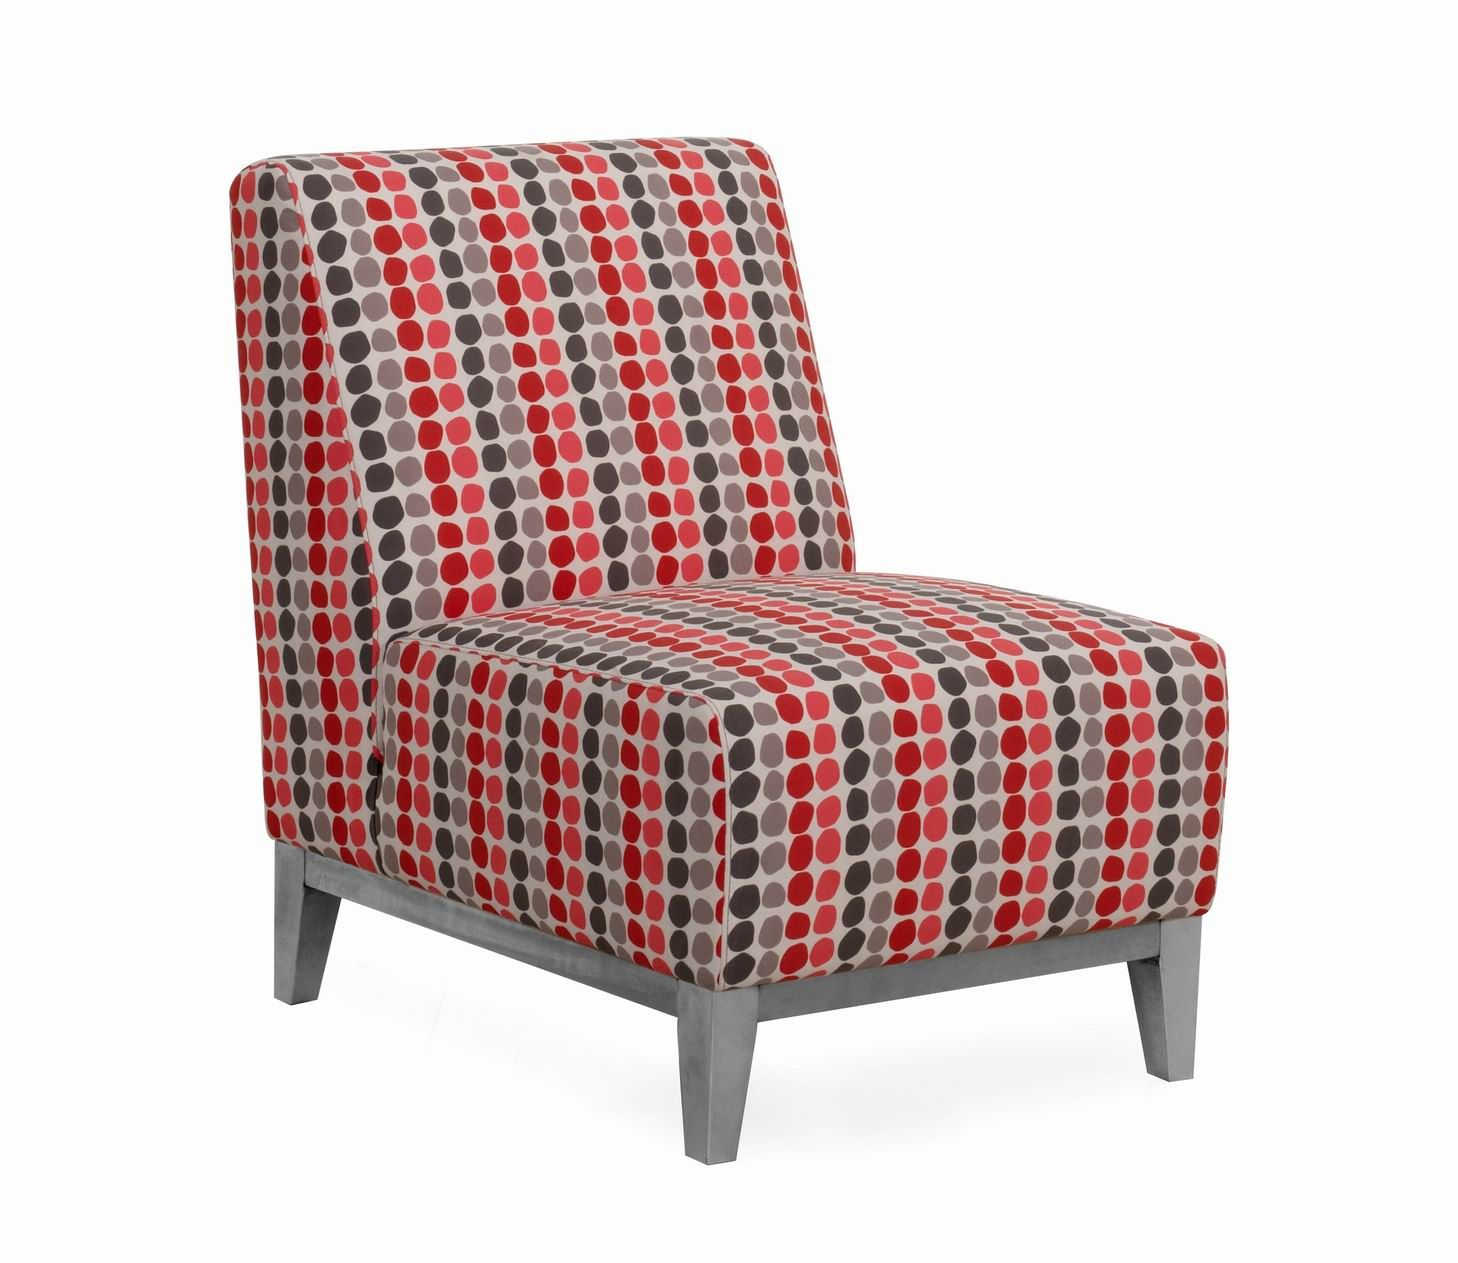 Dream Chic Accent Fabric Chair From Harvey Norman Newzealand